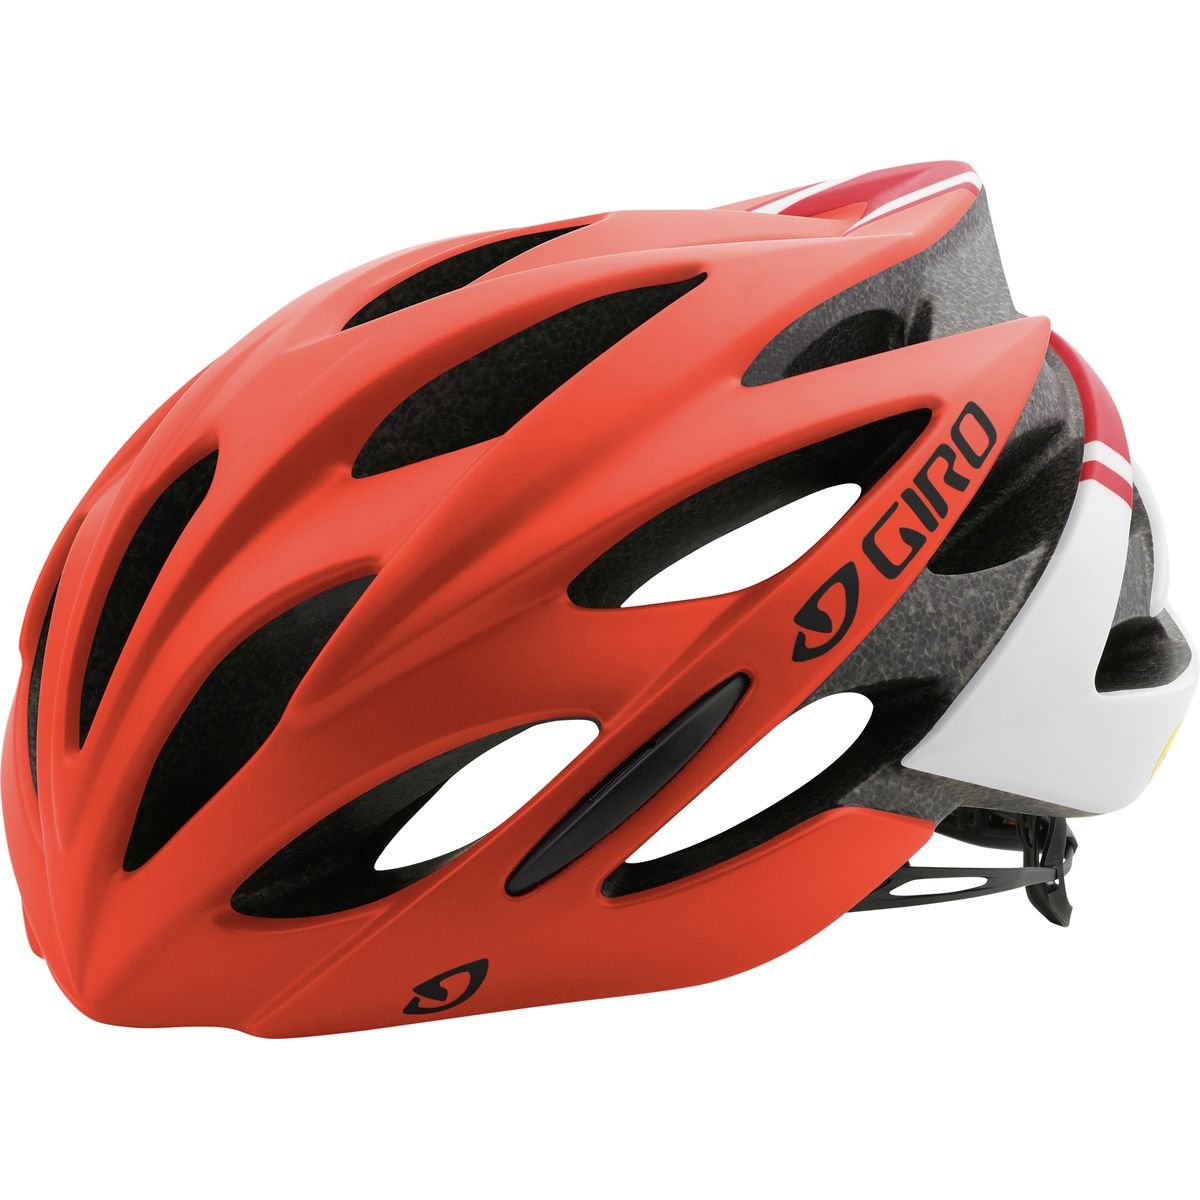 Giro Savant MIPS Helmet (Matte Dark Red, Medium (55-59 cm)) by Giro (Image #1)